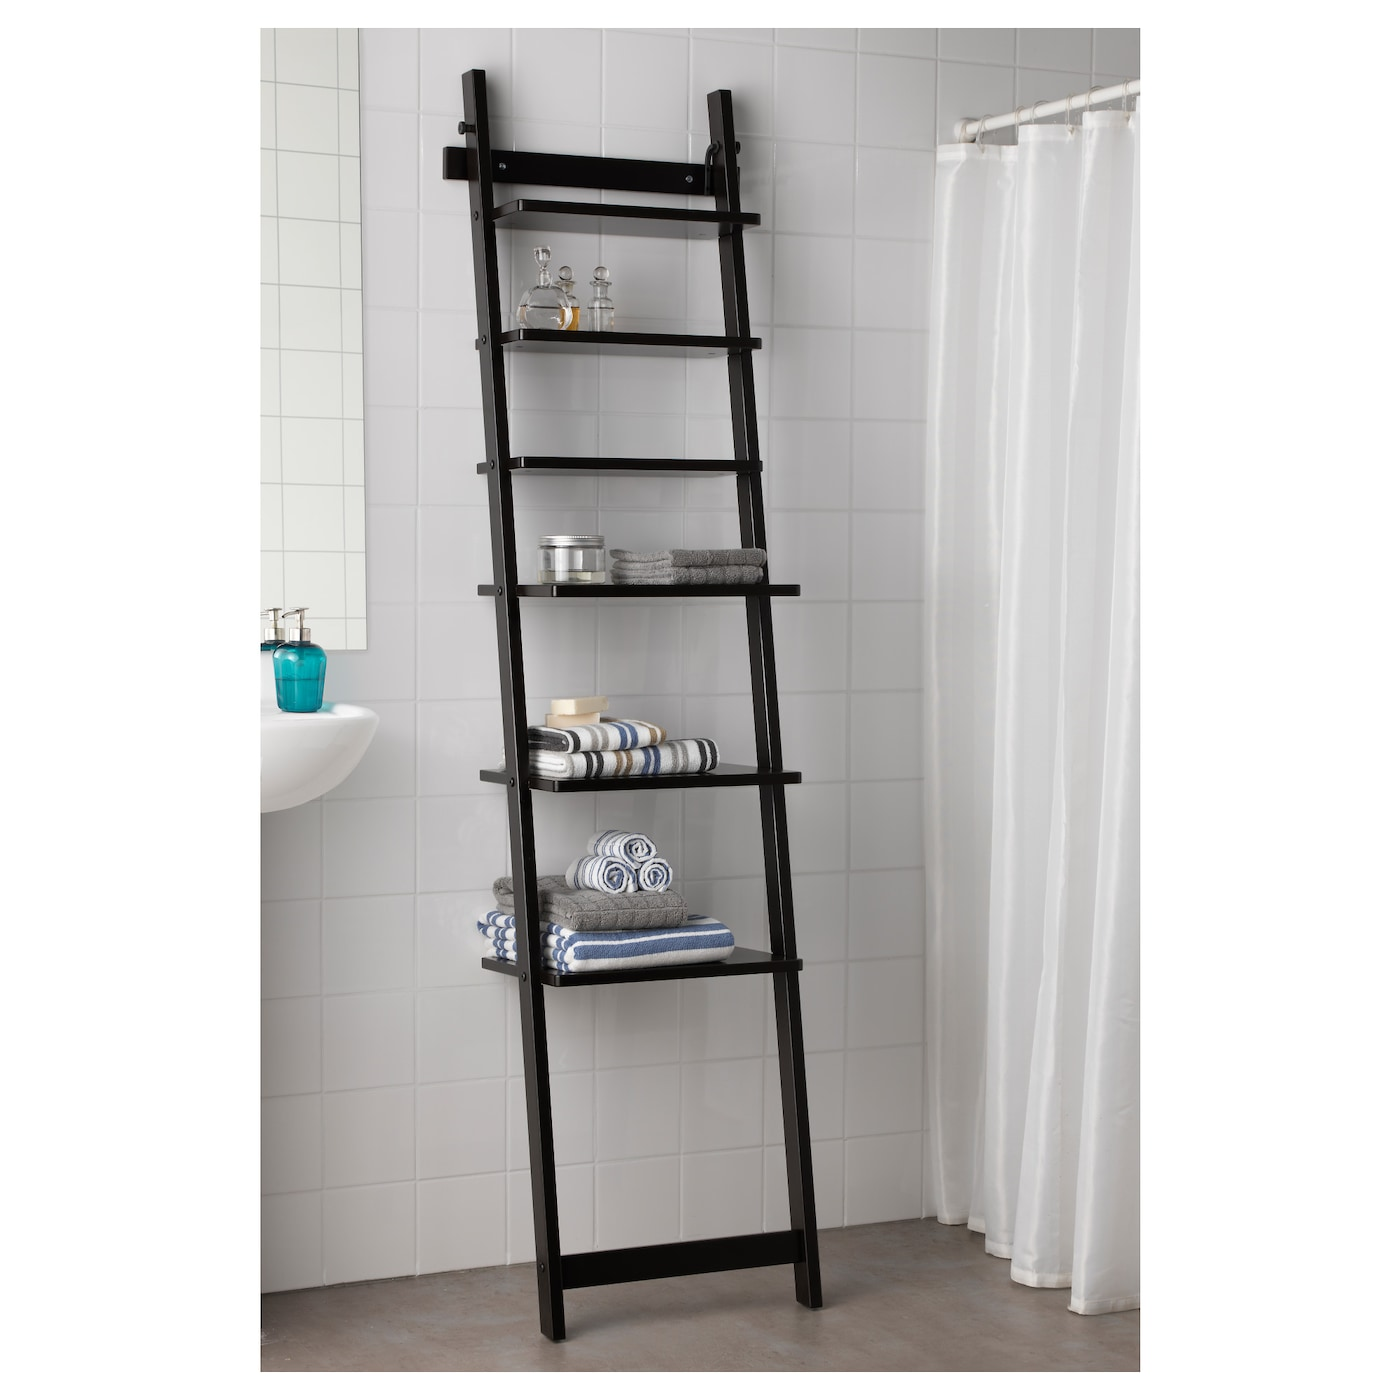 hj lmaren wall shelf black brown 190 cm ikea. Black Bedroom Furniture Sets. Home Design Ideas